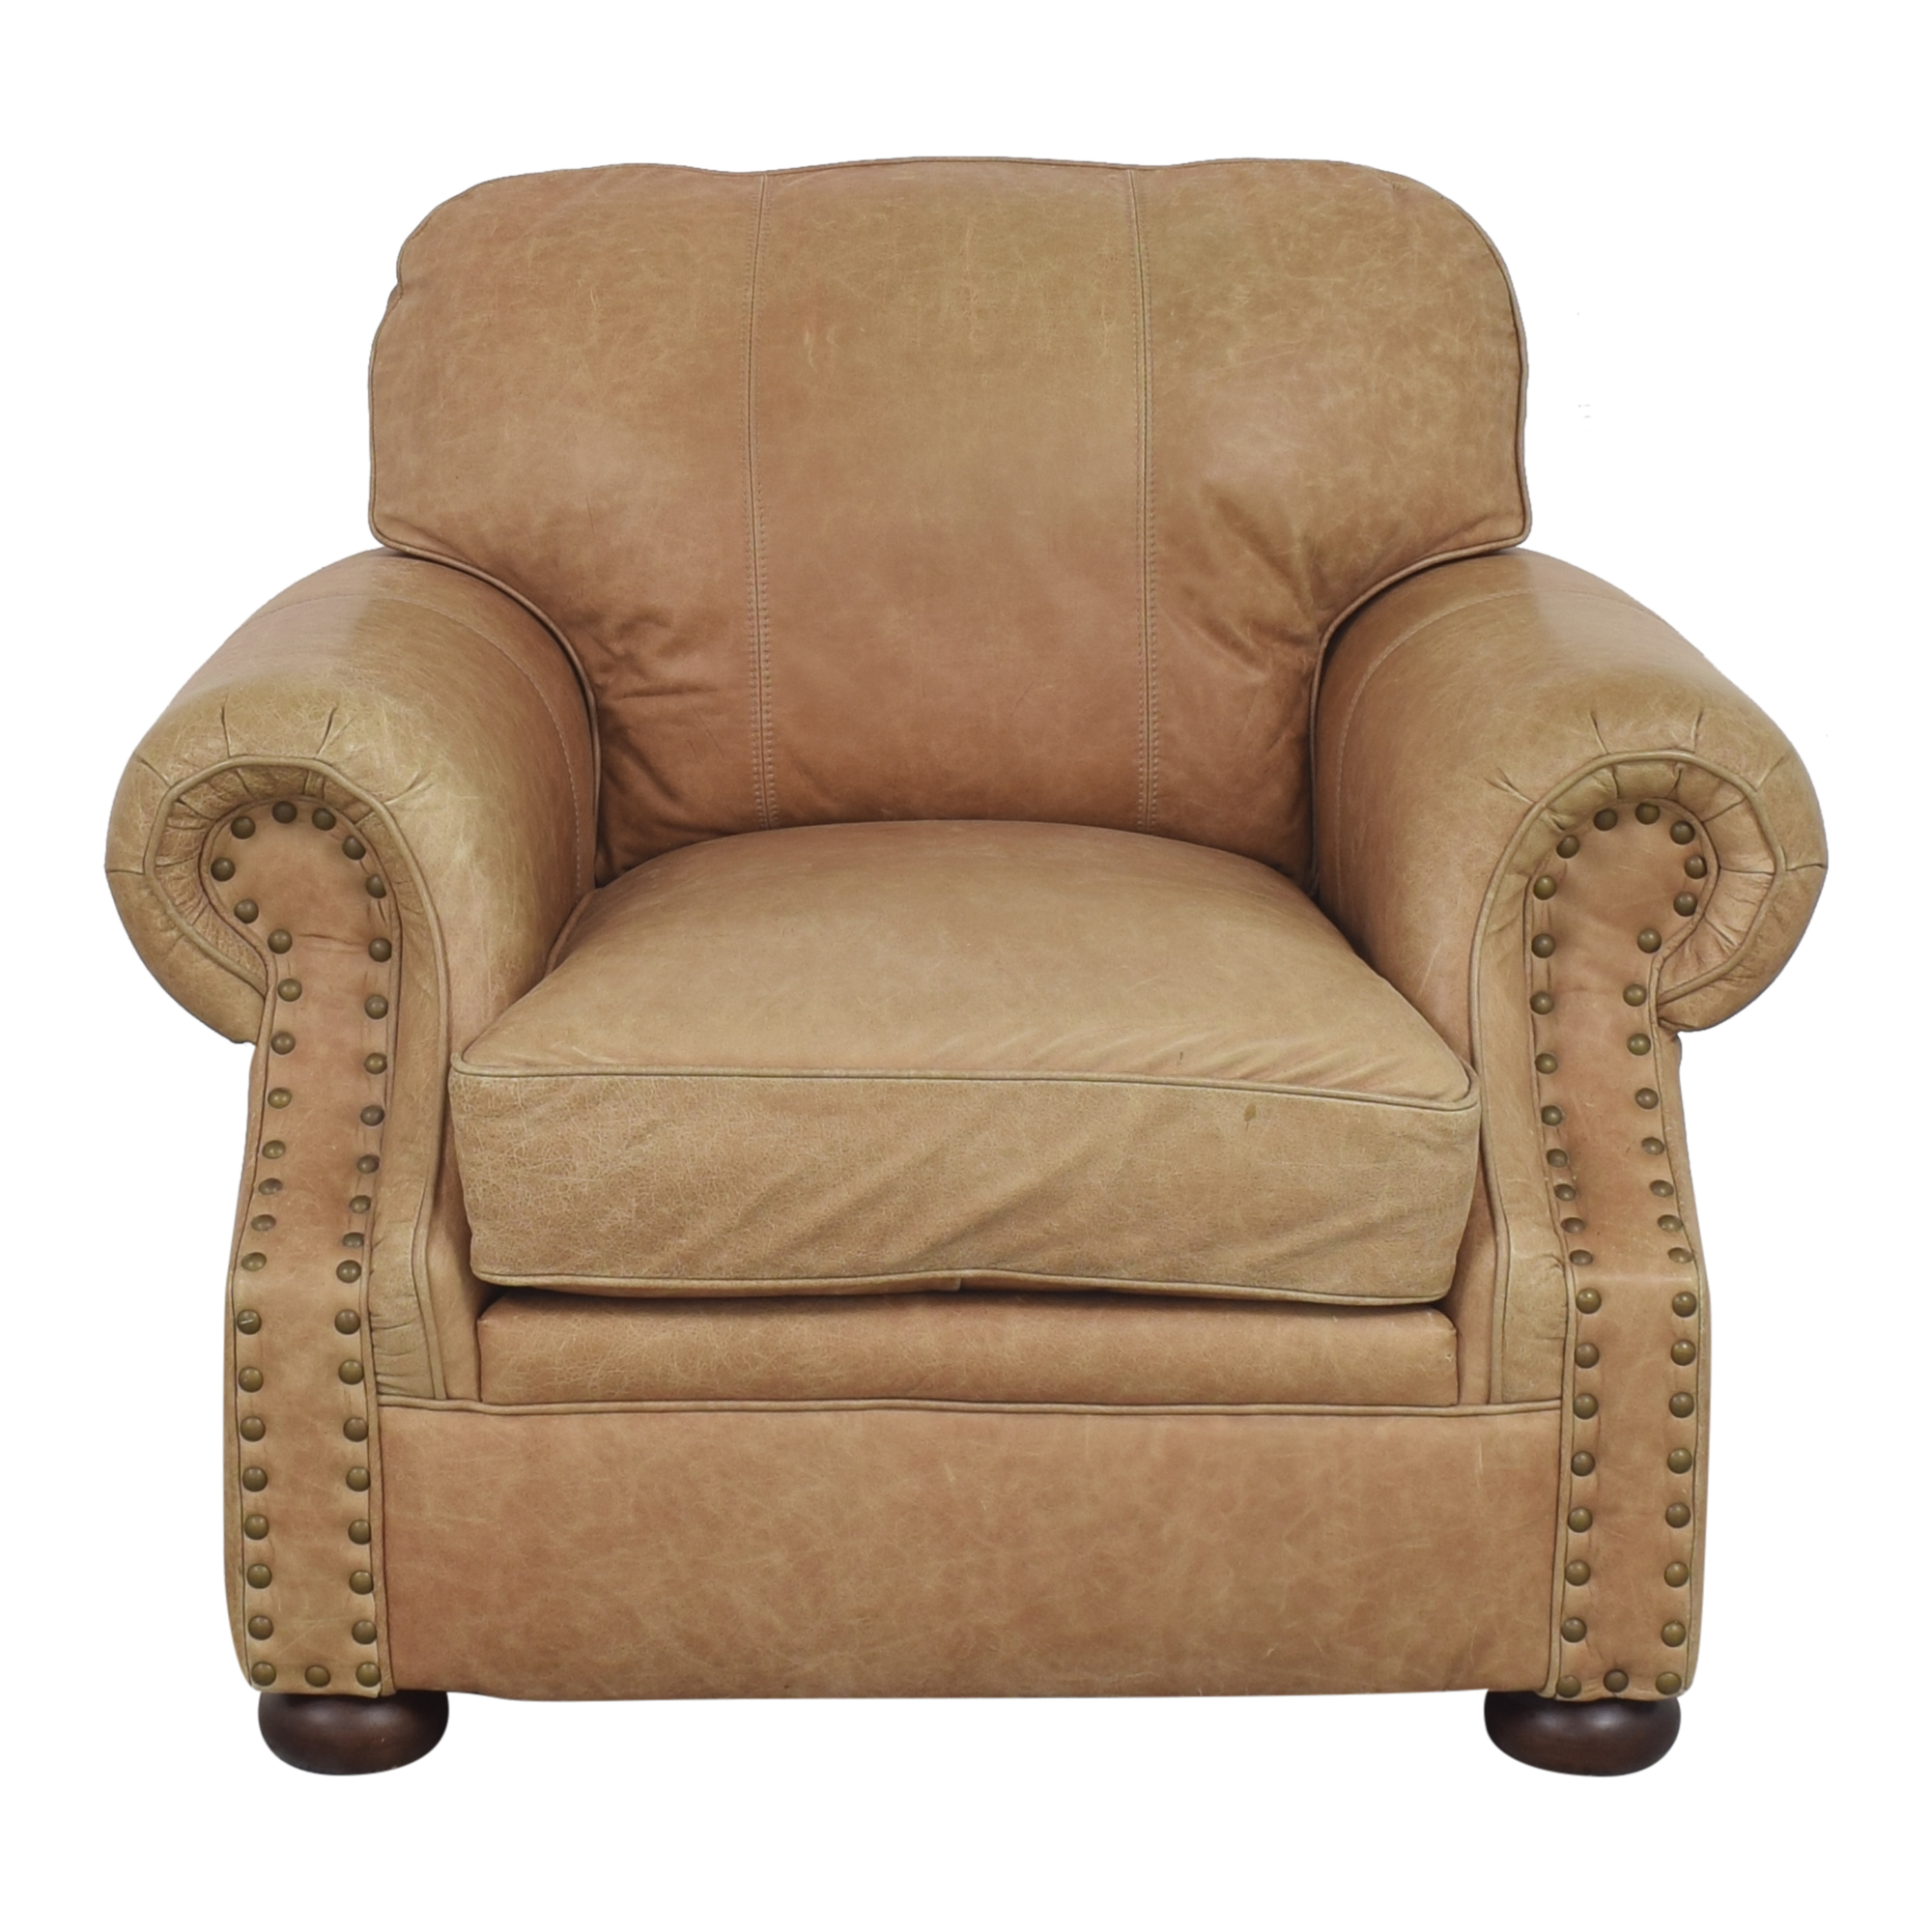 Ethan Allen Ethan Allen Roll Arm Chair with Ottoman used